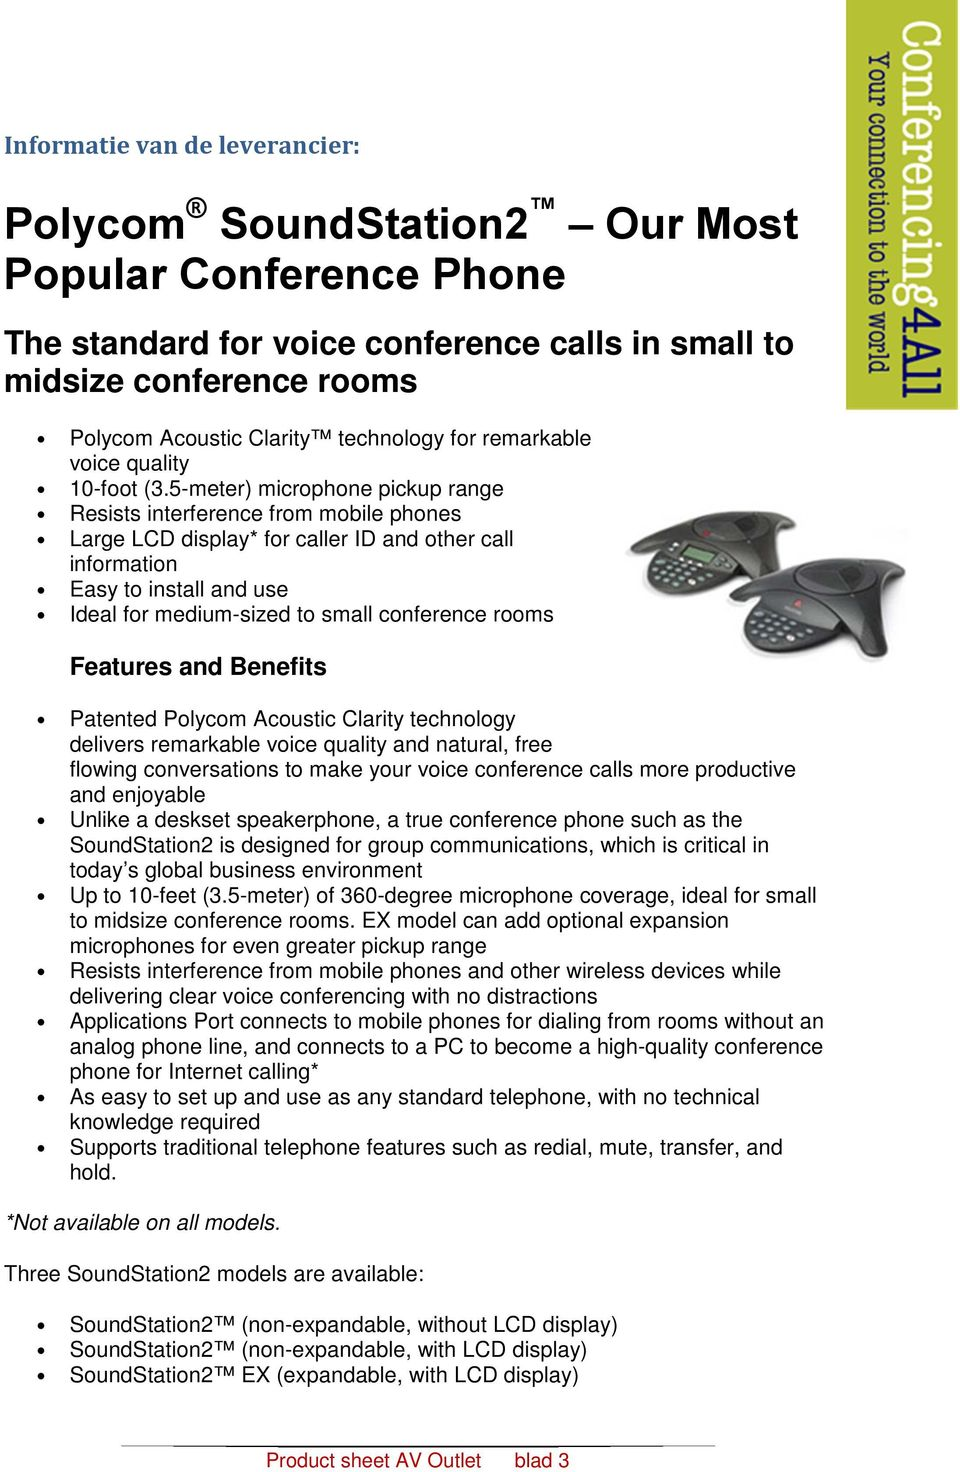 5-meter) microphone pickup range Resists interference from mobile phones Large LCD display* for caller ID and other call information Easy to install and use Ideal for medium-sized to small conference